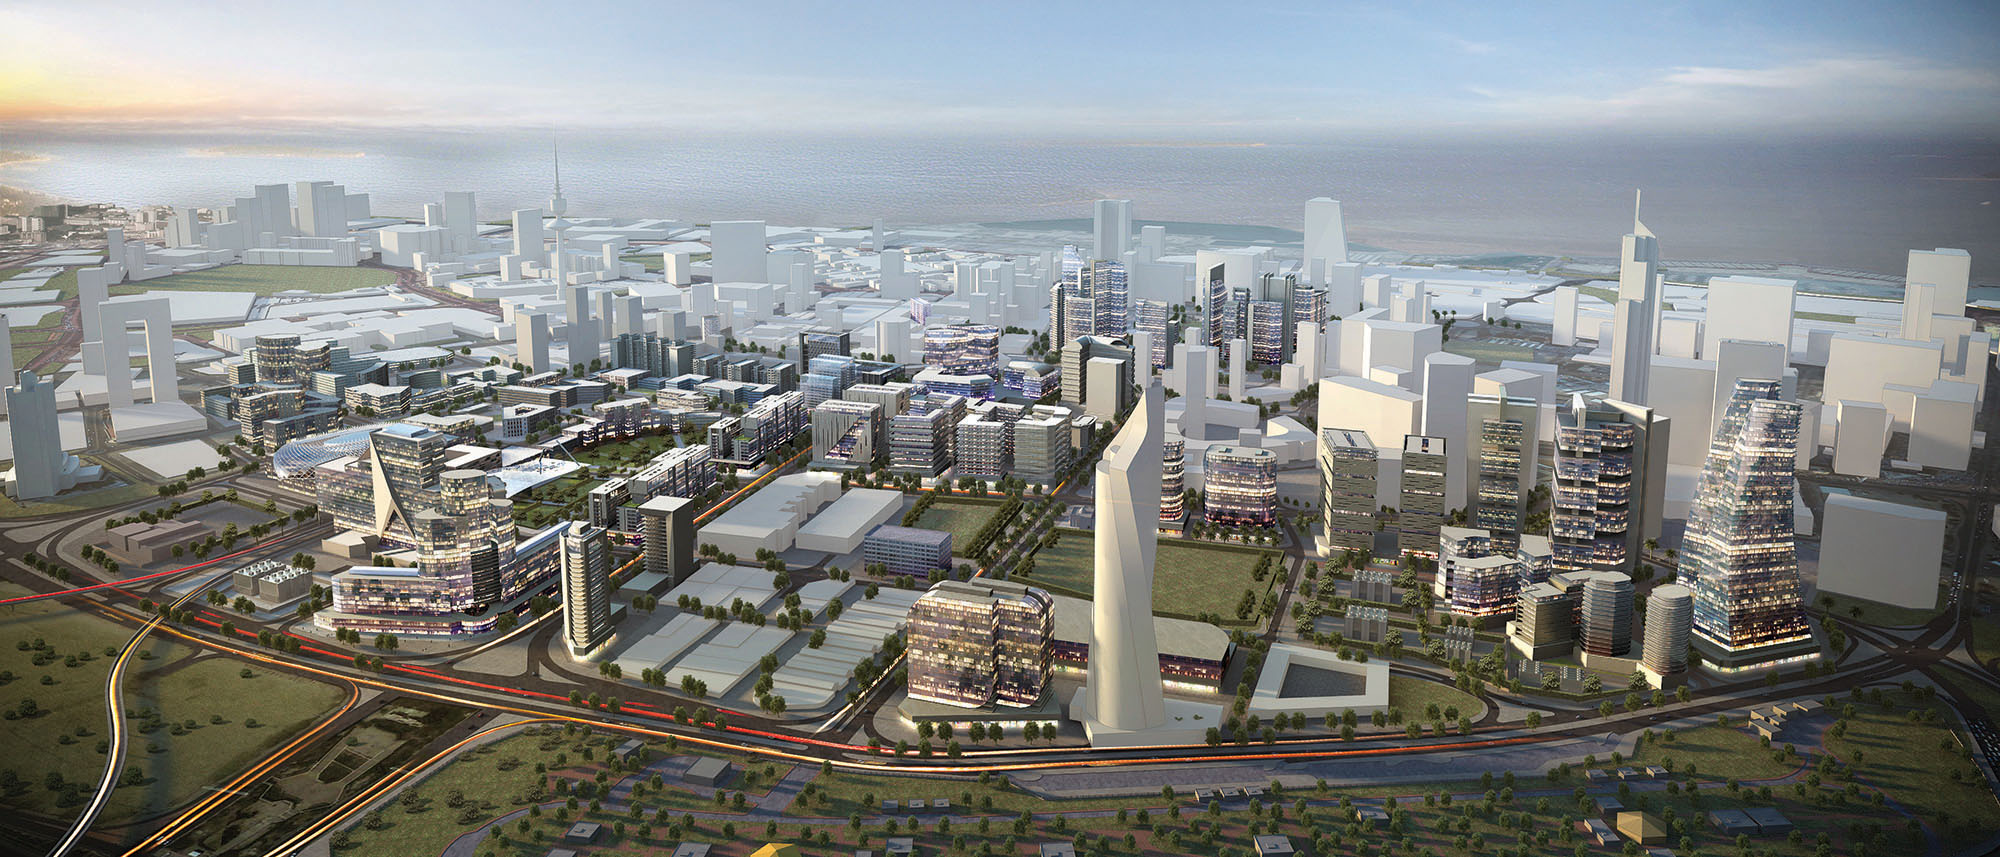 Kuwait City Urban Development 2030